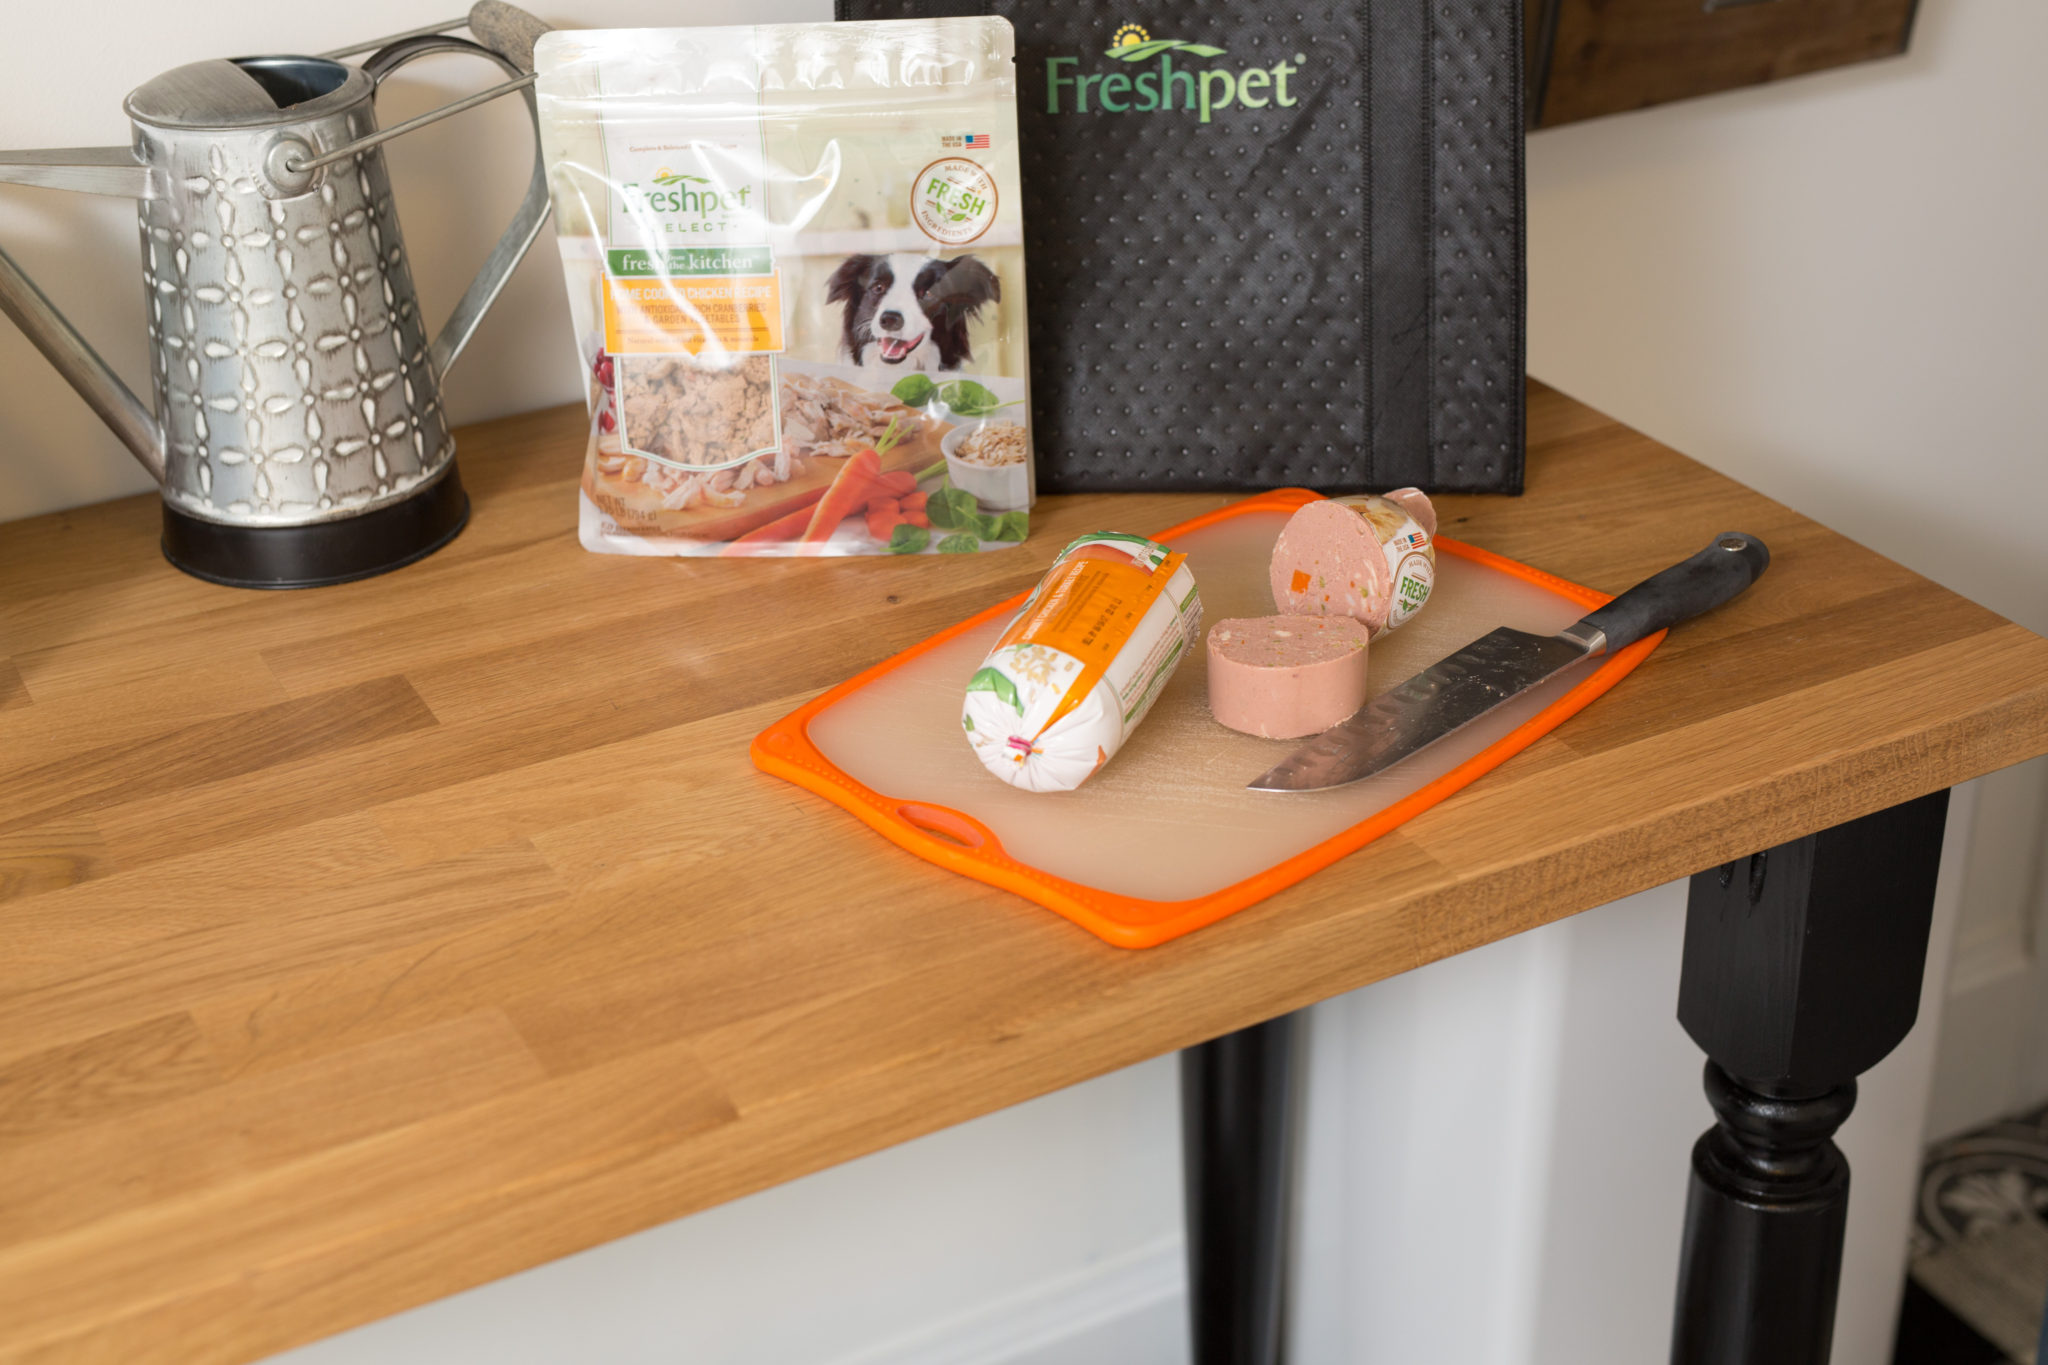 fresh dog food with freshpet on allweareblog.com | our review of freshpet dog food